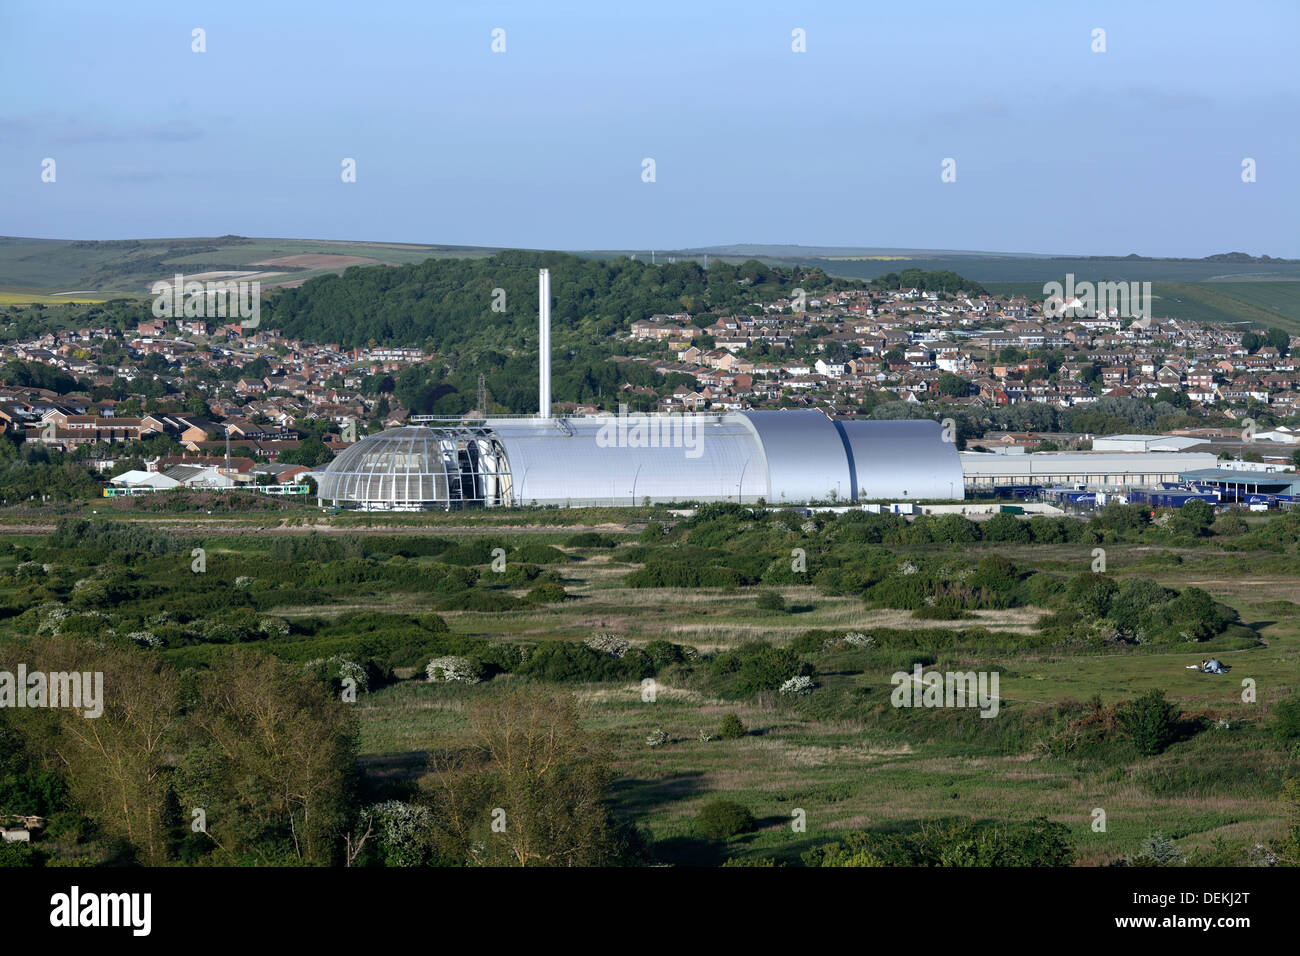 Refuse incinerator, North Quay, Newhaven, East Sussex. Officially known as the Newhaven Energy Recovery Facility. - Stock Image